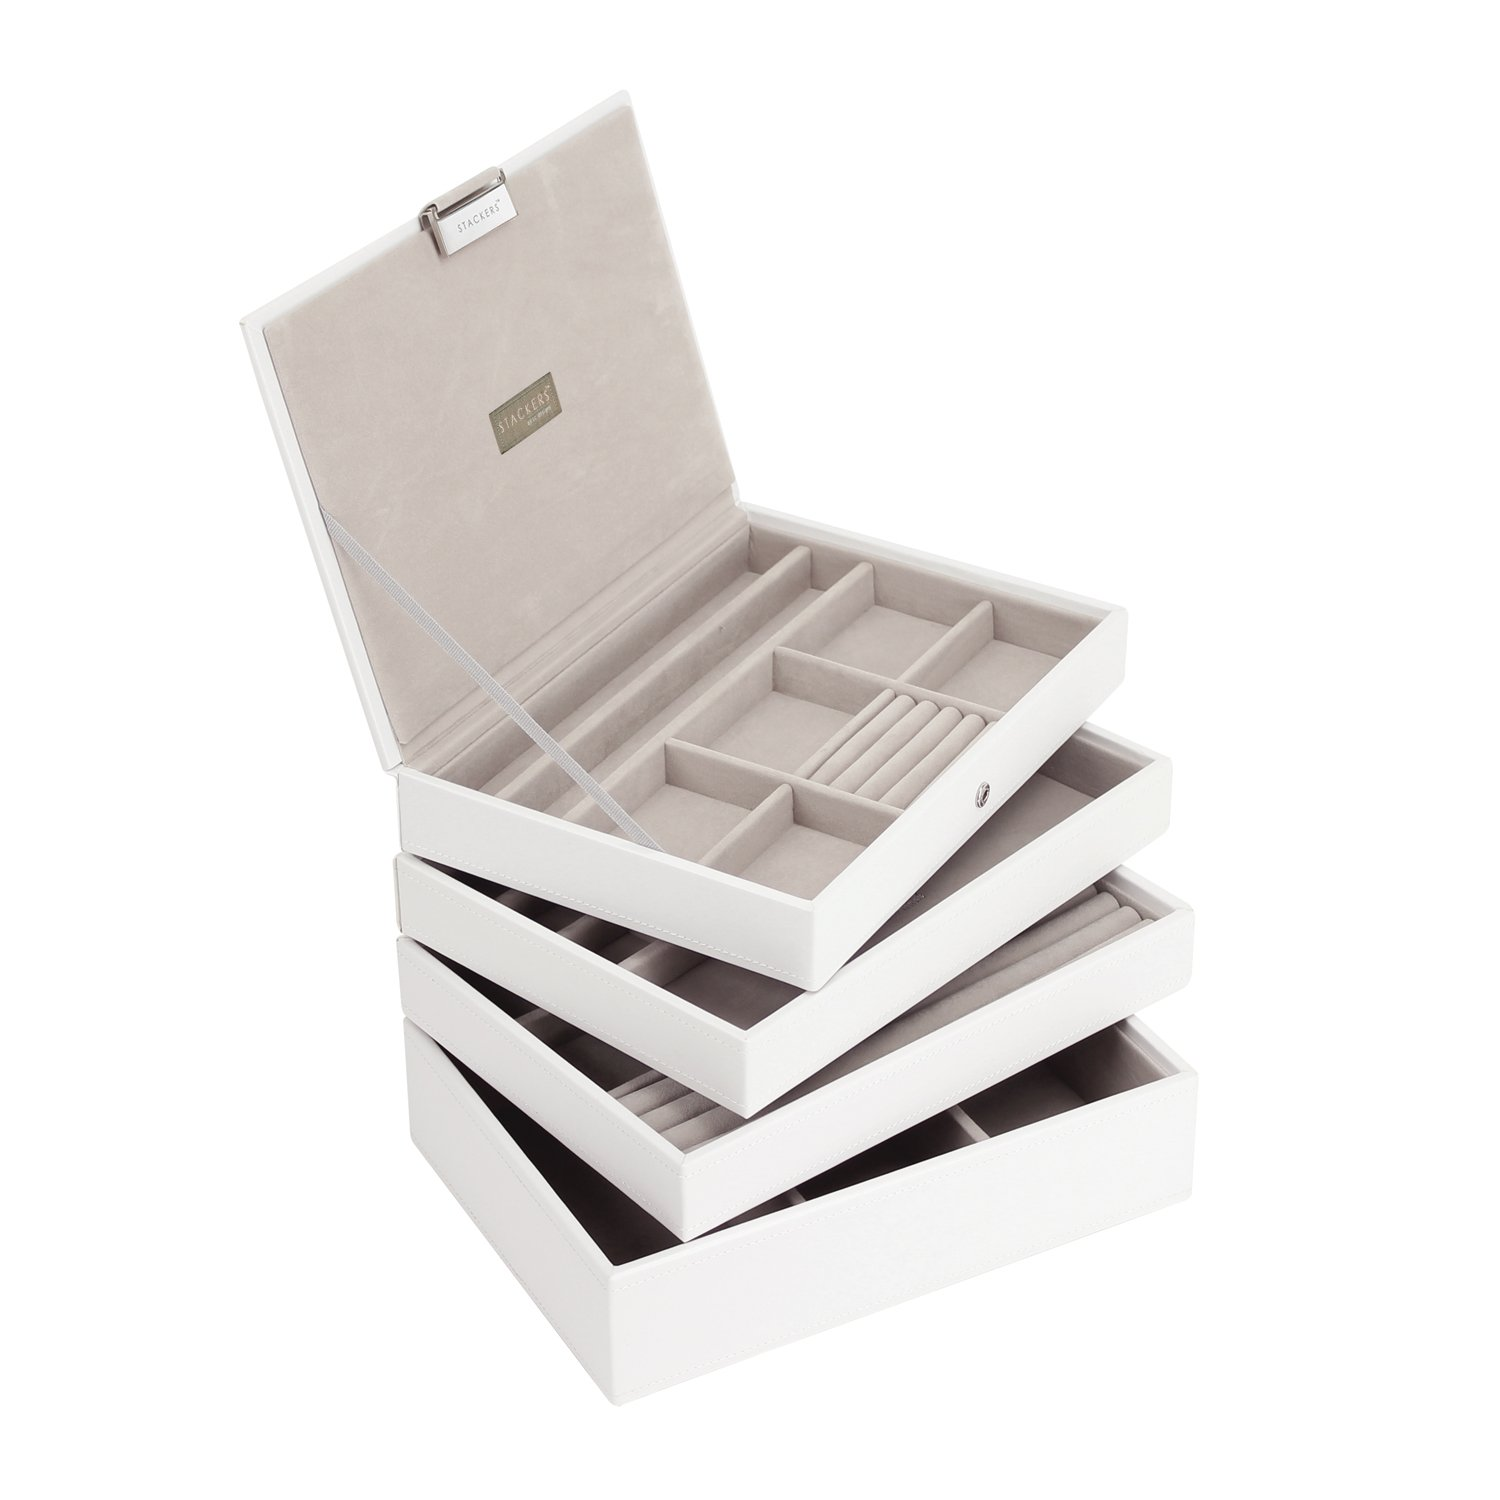 STACKERS Set of 4 'CLASSIC SIZE' - White STACKER Set of 4 Jewellery Box with Grey Velvet Finish Lining Carters of London 70785